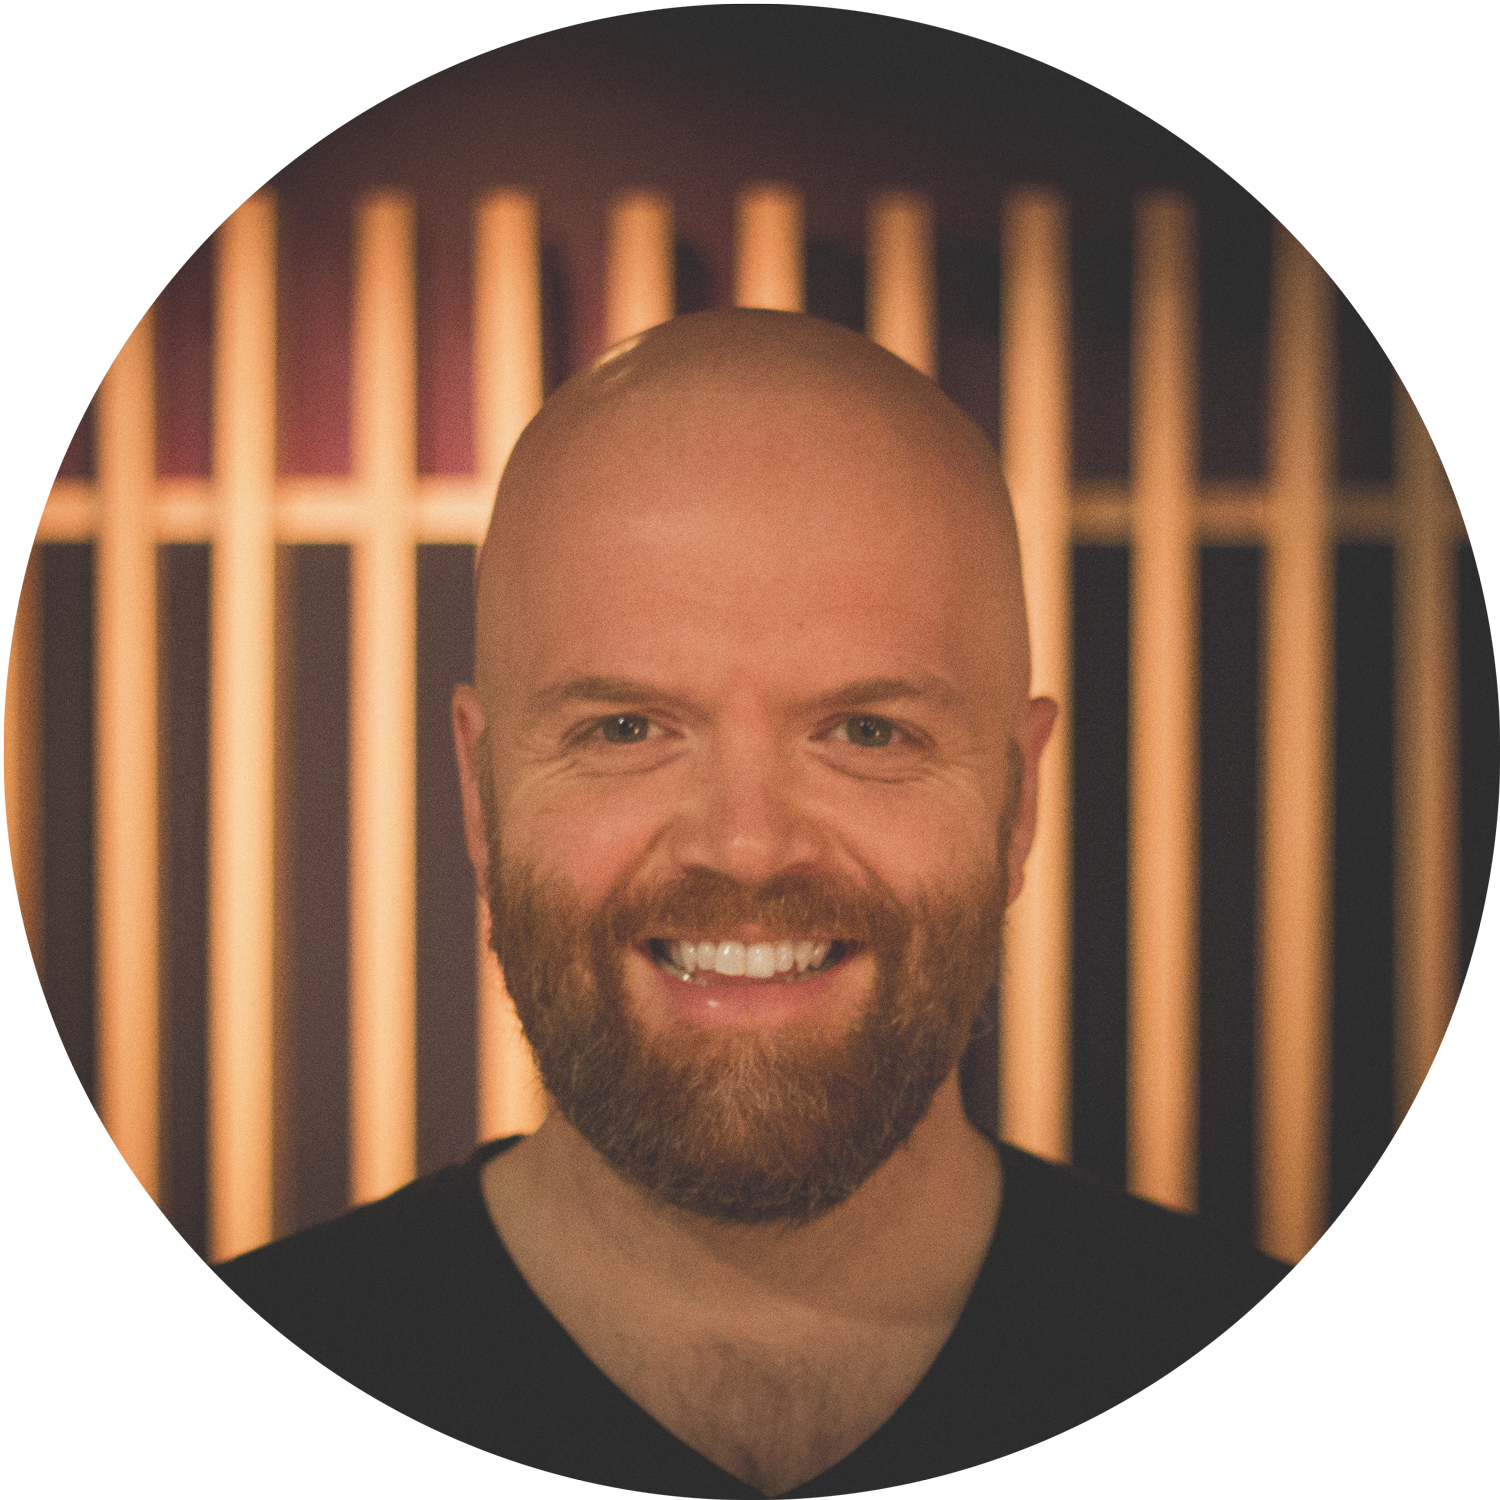 Edmonton-Recording-Studio-Brad-Smith-Smile.png